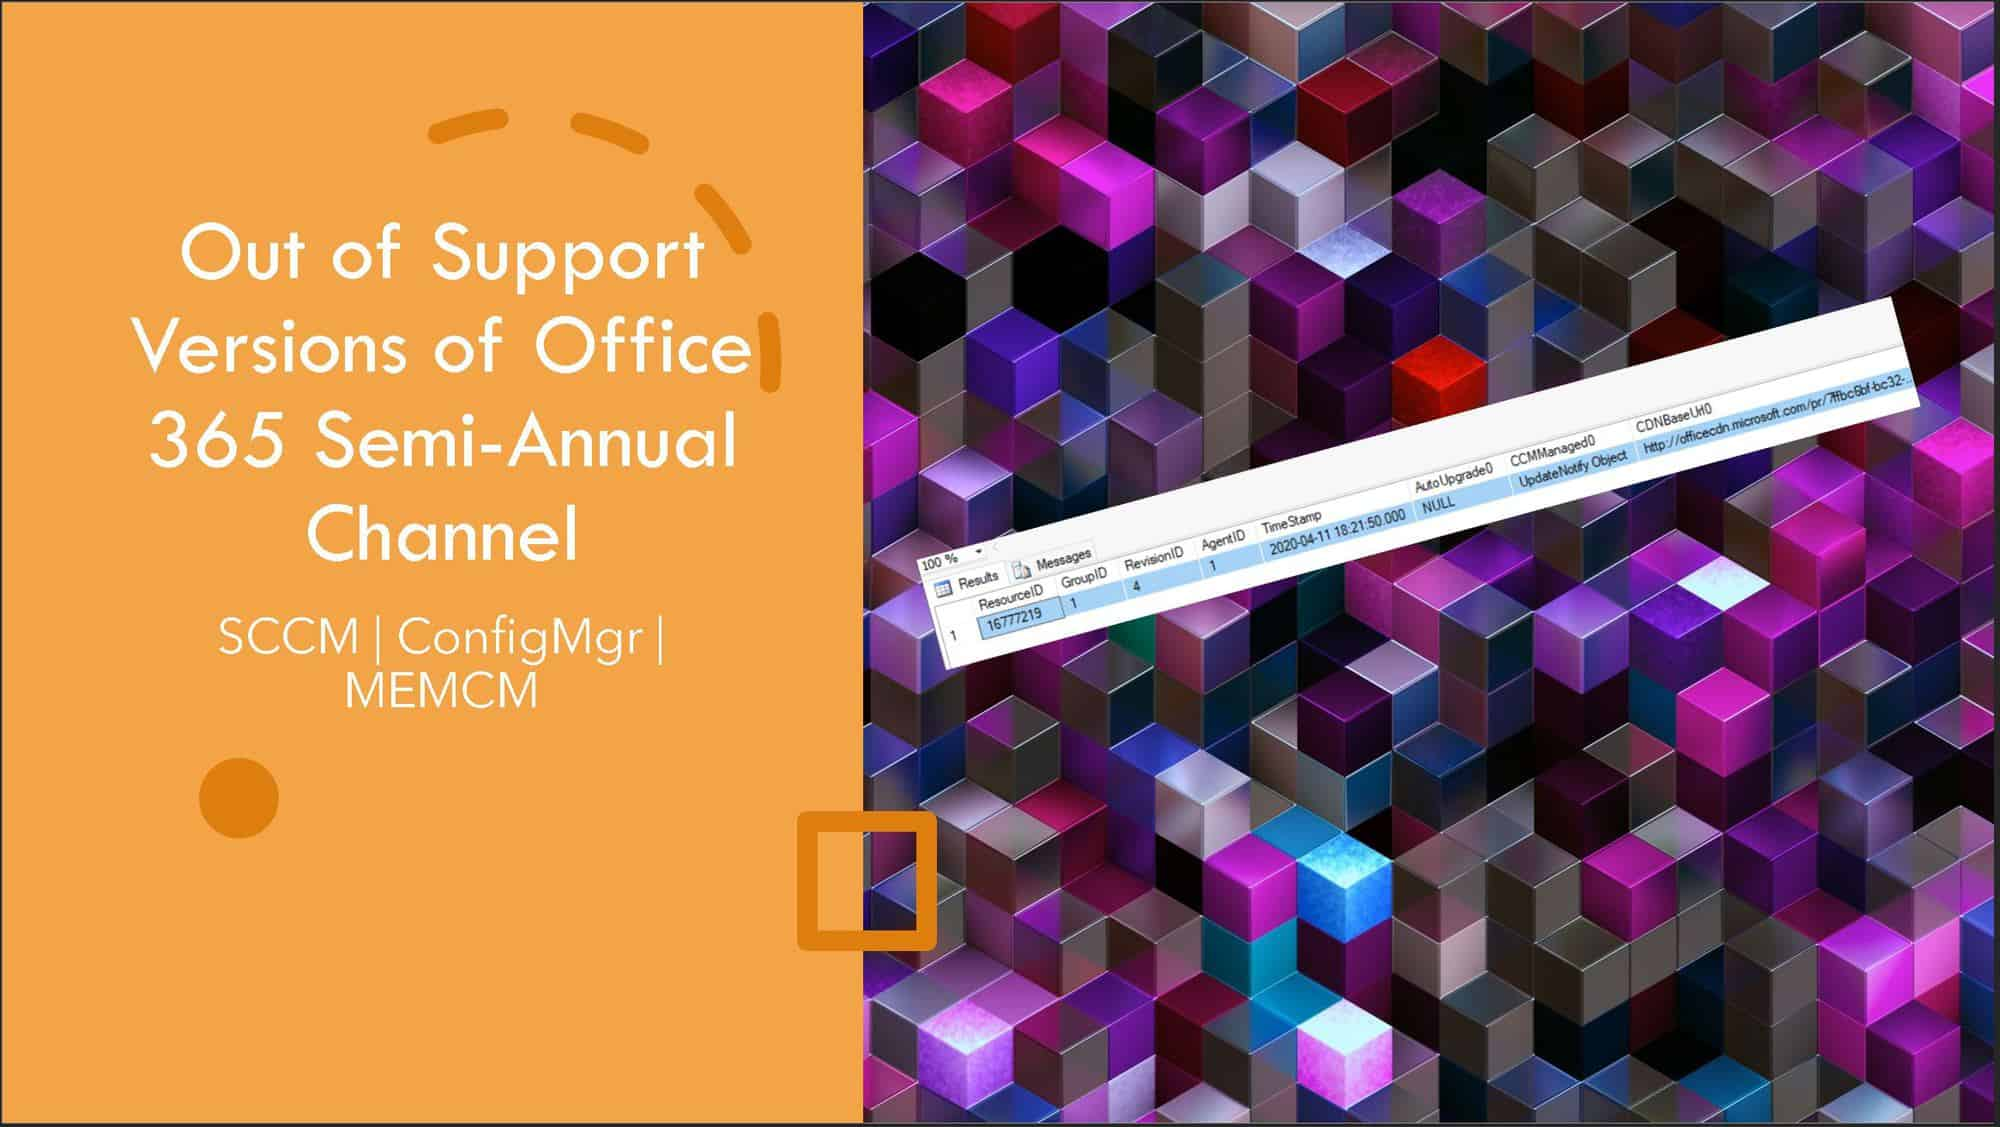 SCCM Custom Report Out of Support Versions of Office 365 Semi-Annual Channel ConfigMgr